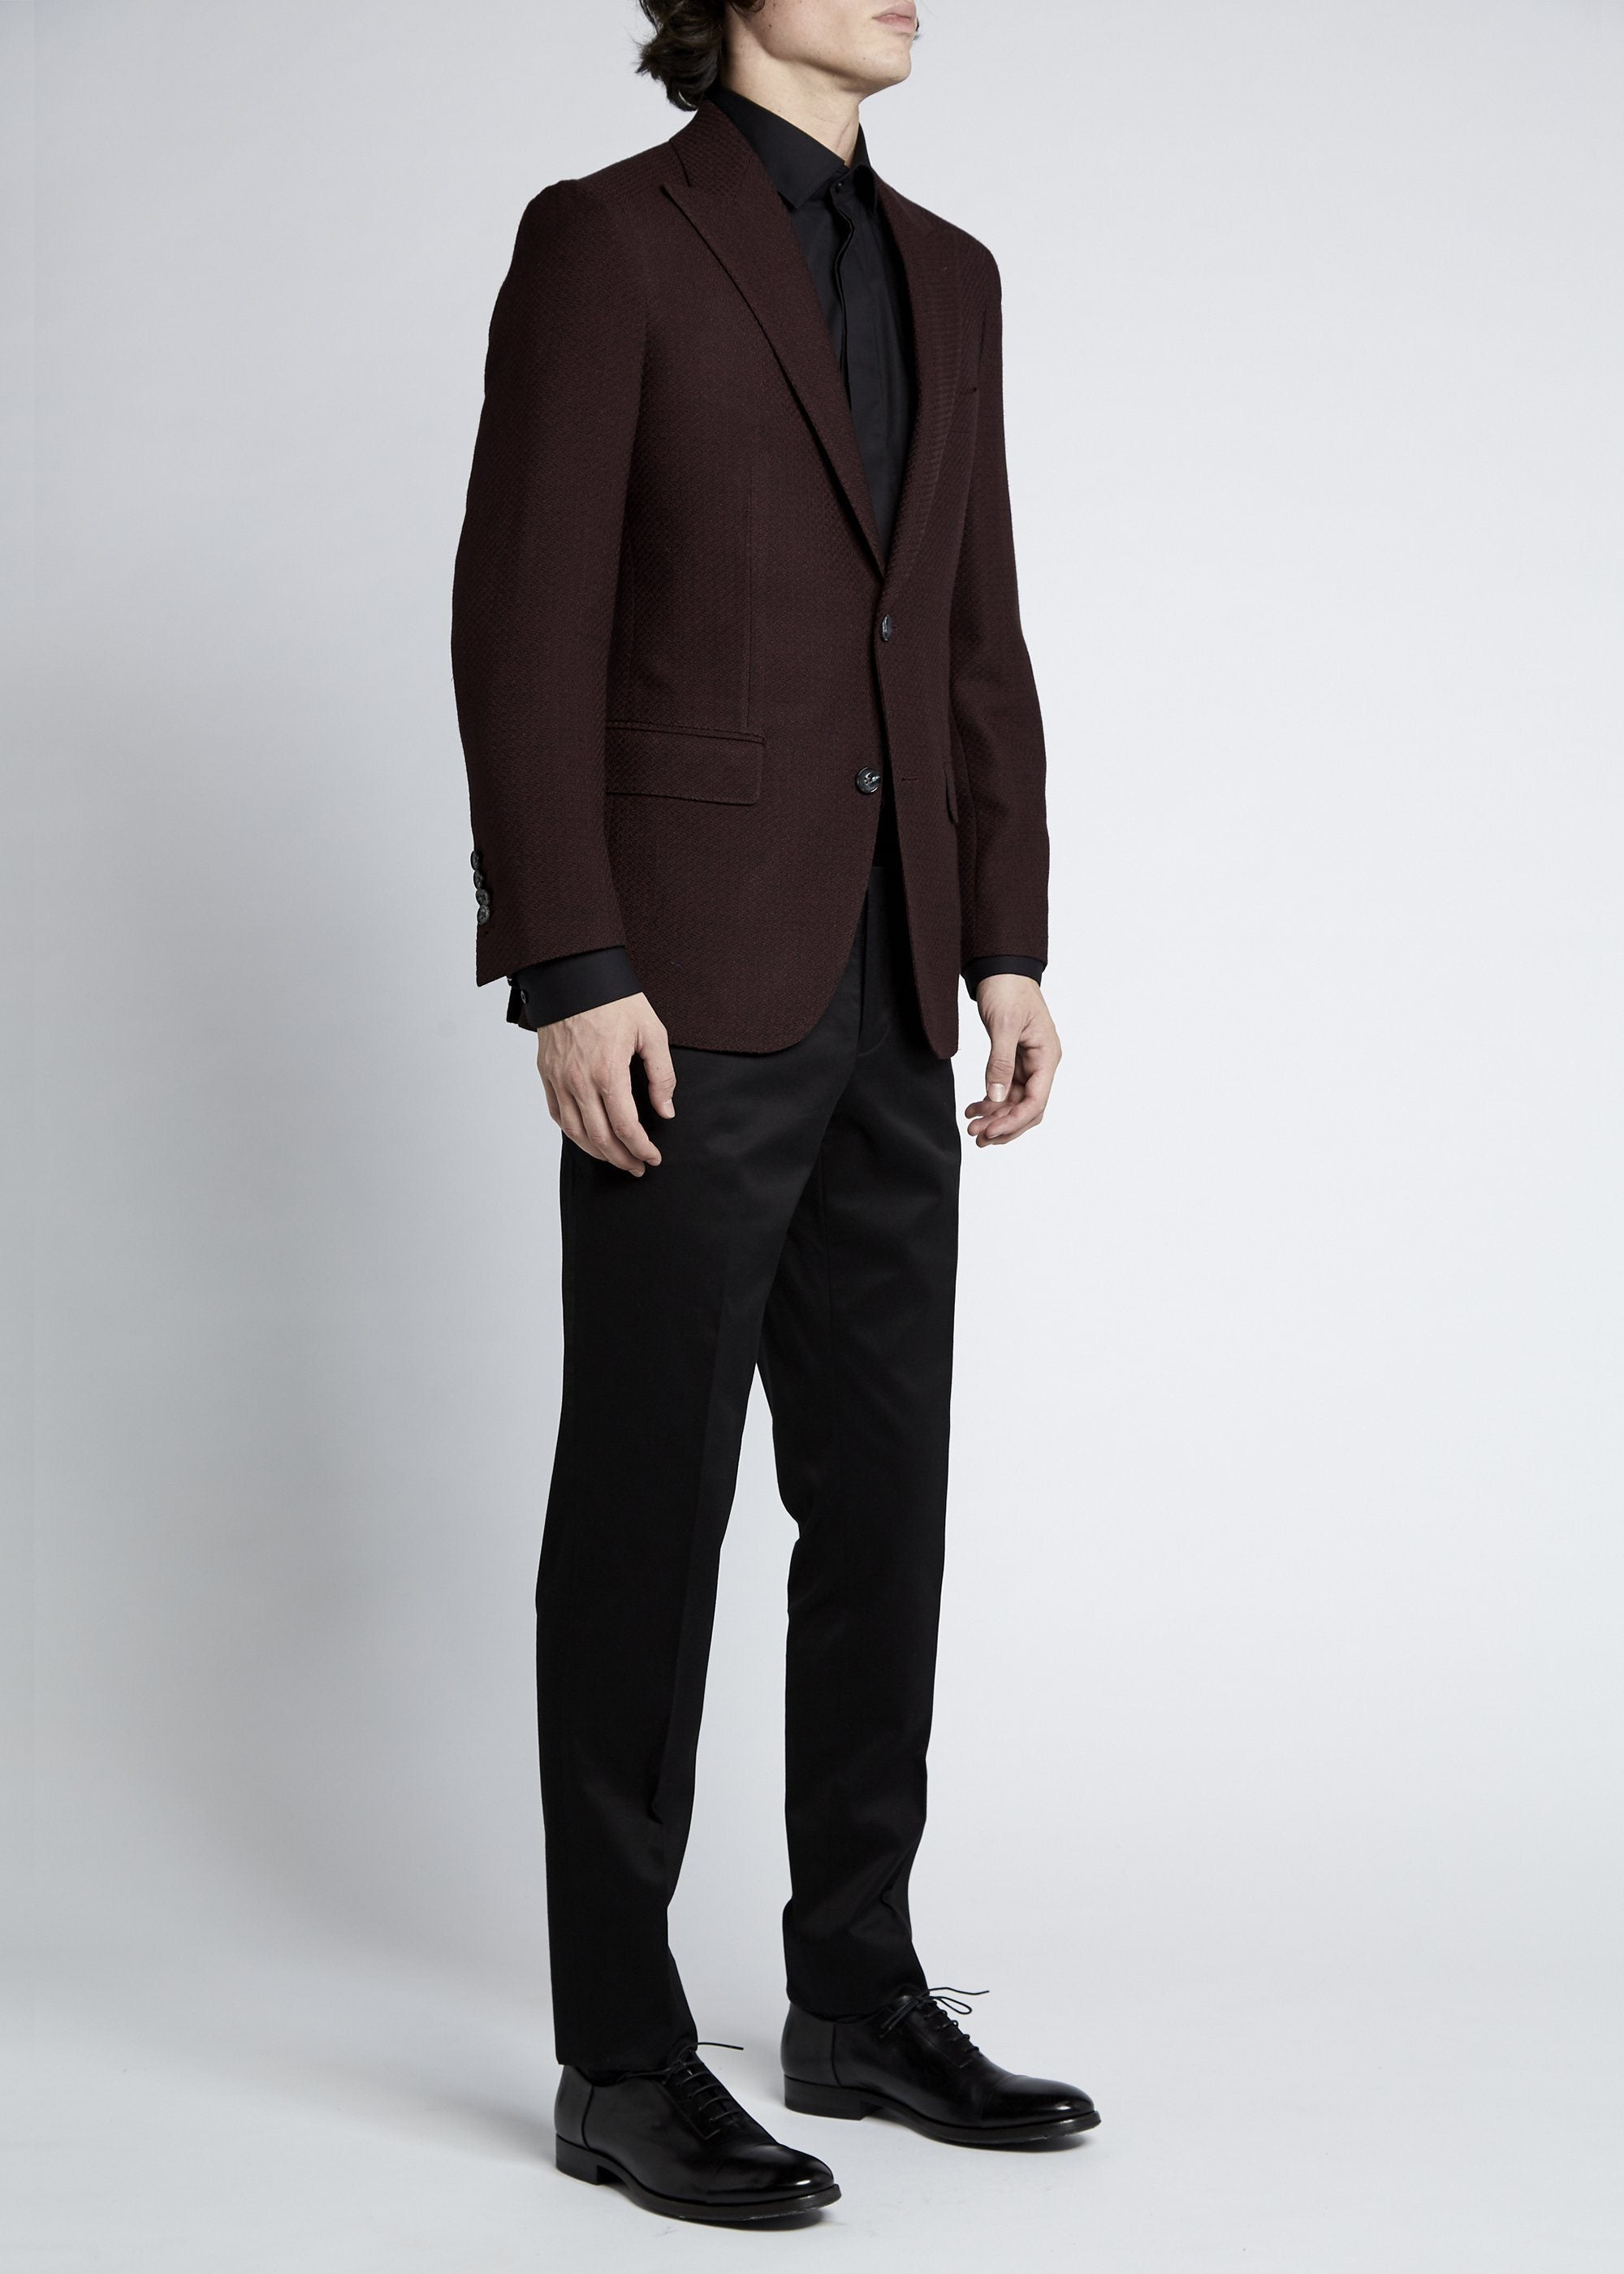 Matias Sports Jacket - Burgundy Knitted